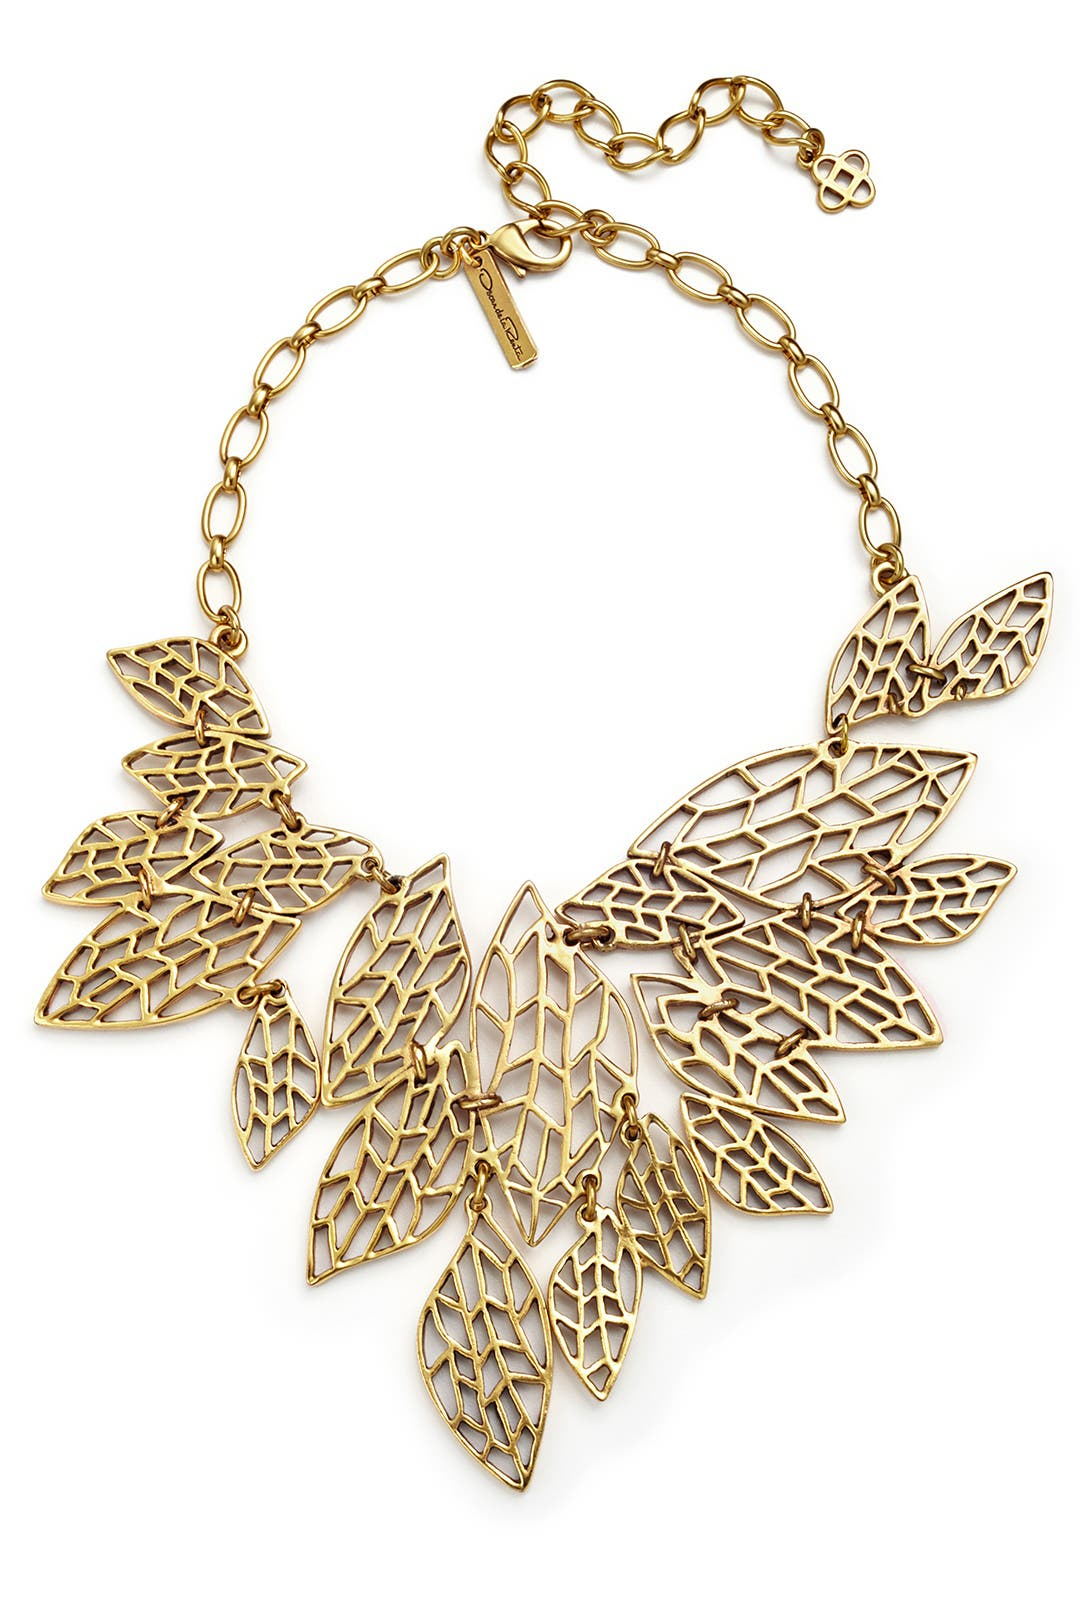 Leaves of Grass Necklace by Oscar de la Renta